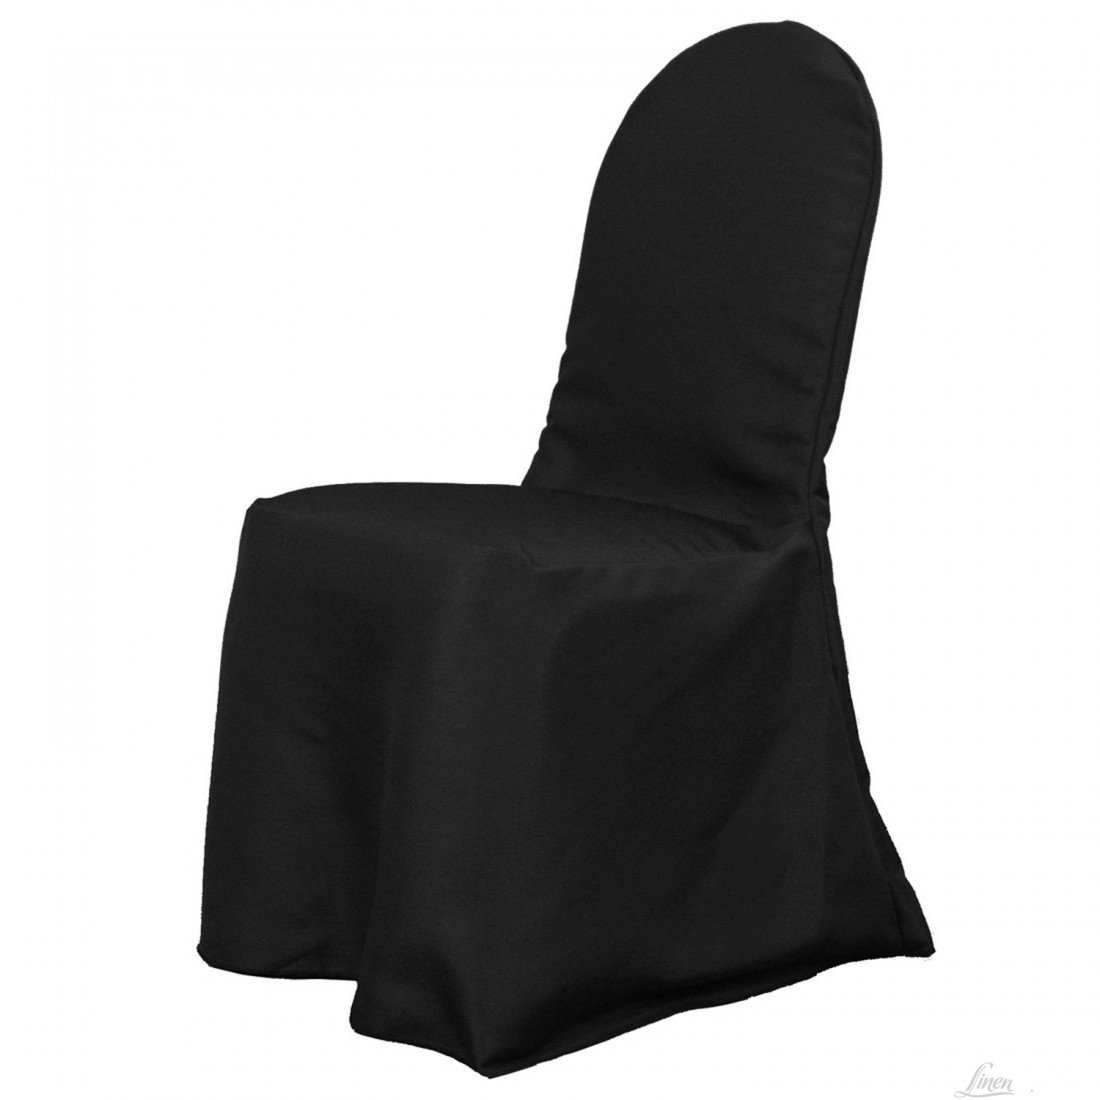 Banquet Style Chair Cover Black $5.00 incl gst